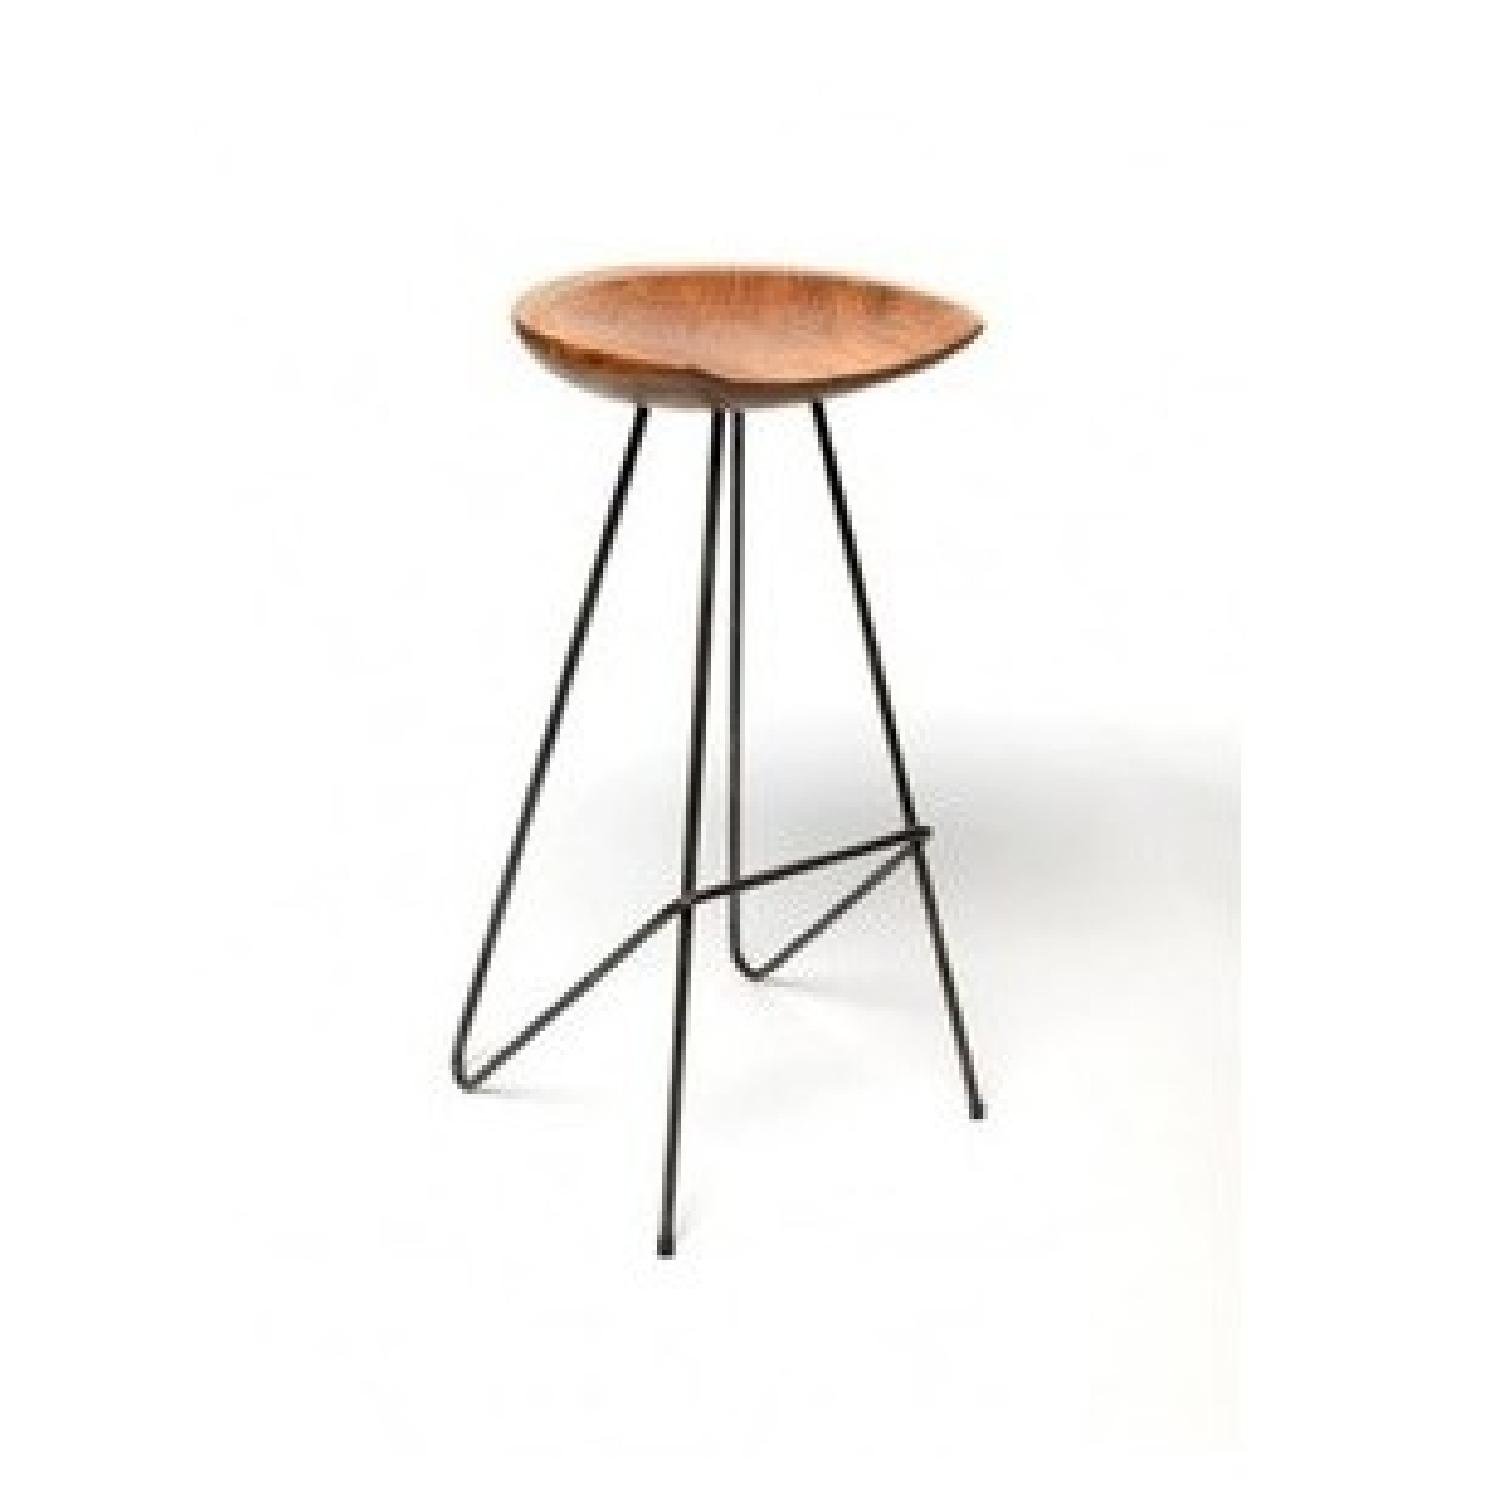 From The Source Perch Teak Bar Stool-3